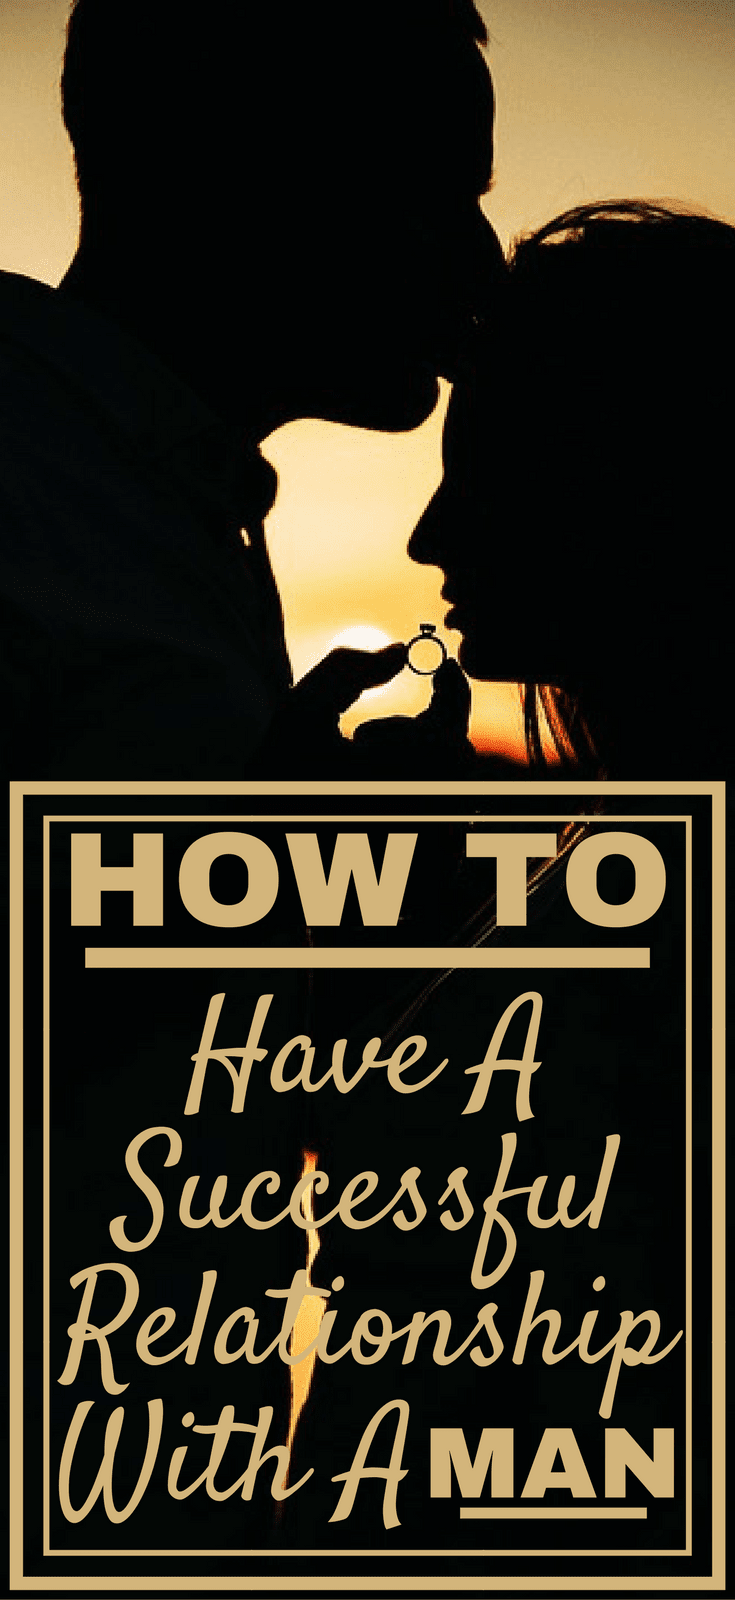 How To Have A Successful Relationship With A Man?